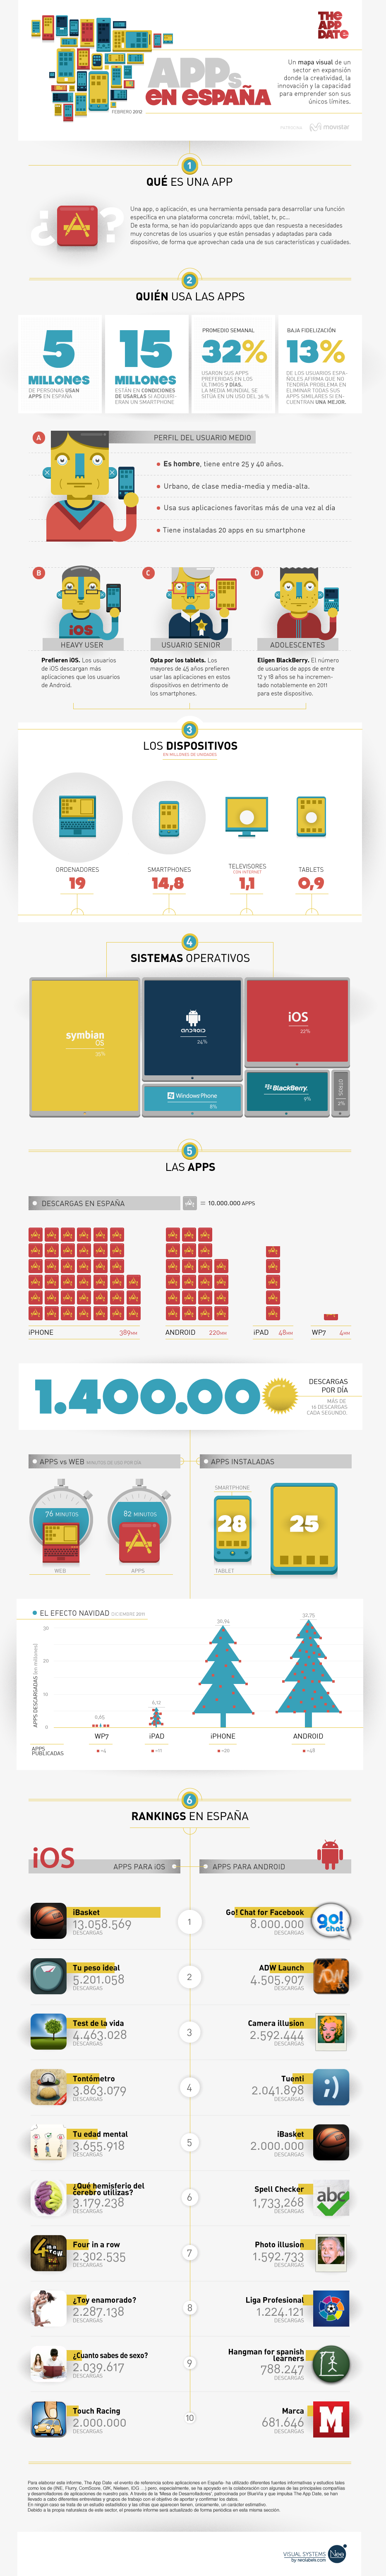 Segundo informe de las apps de The App Date